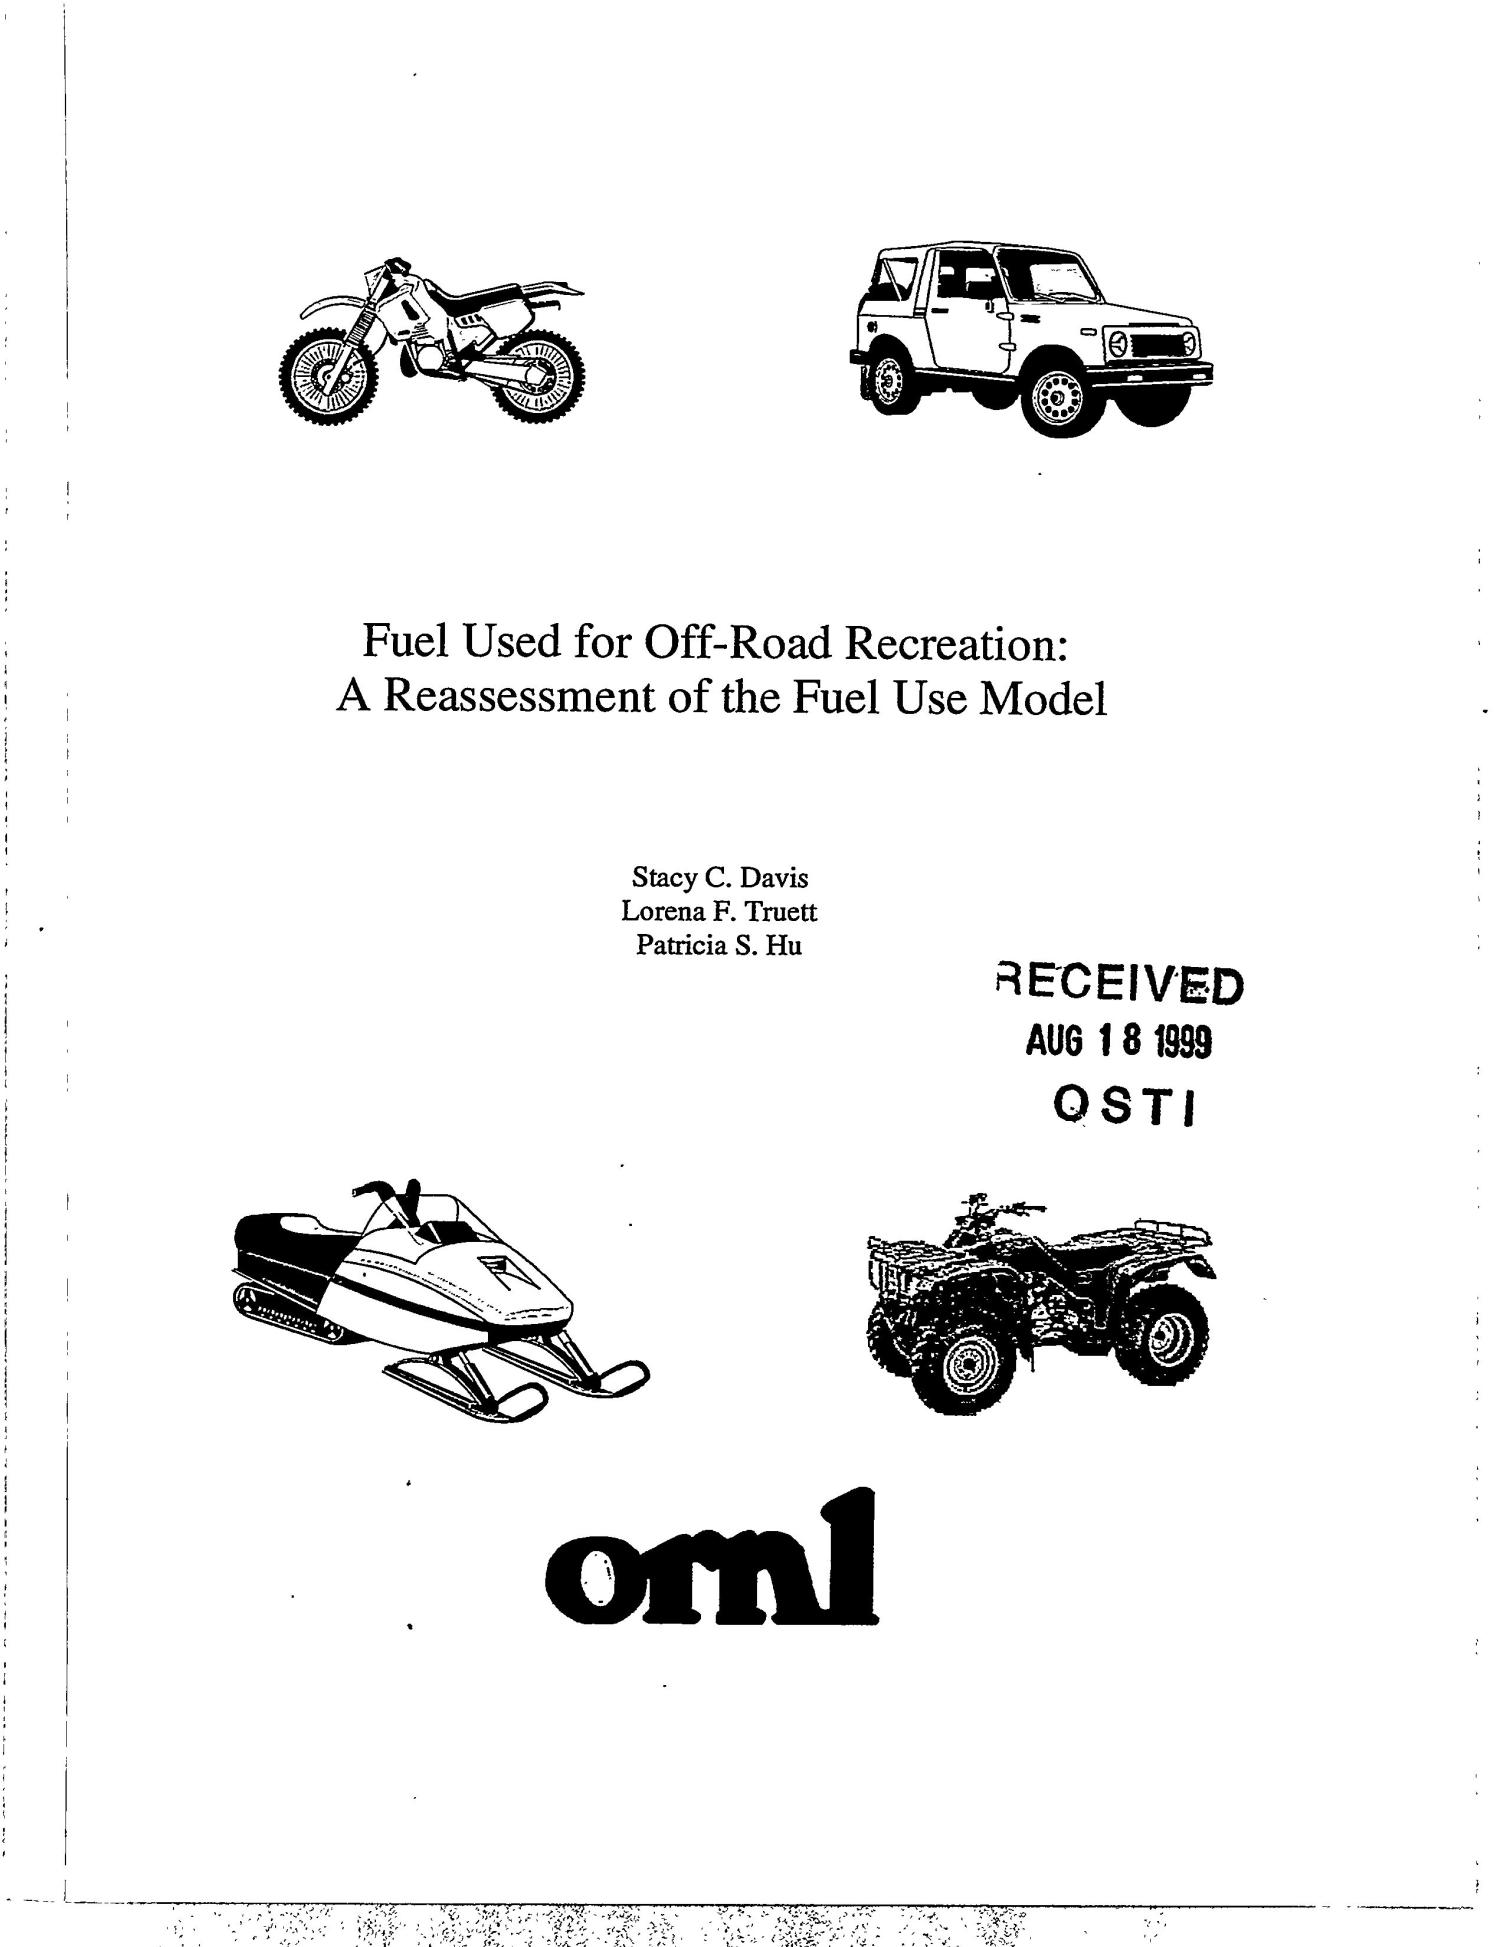 Fuel Used for Off-Road Recreation: A Reassessment of the Fuel Use Model                                                                                                      [Sequence #]: 1 of 86